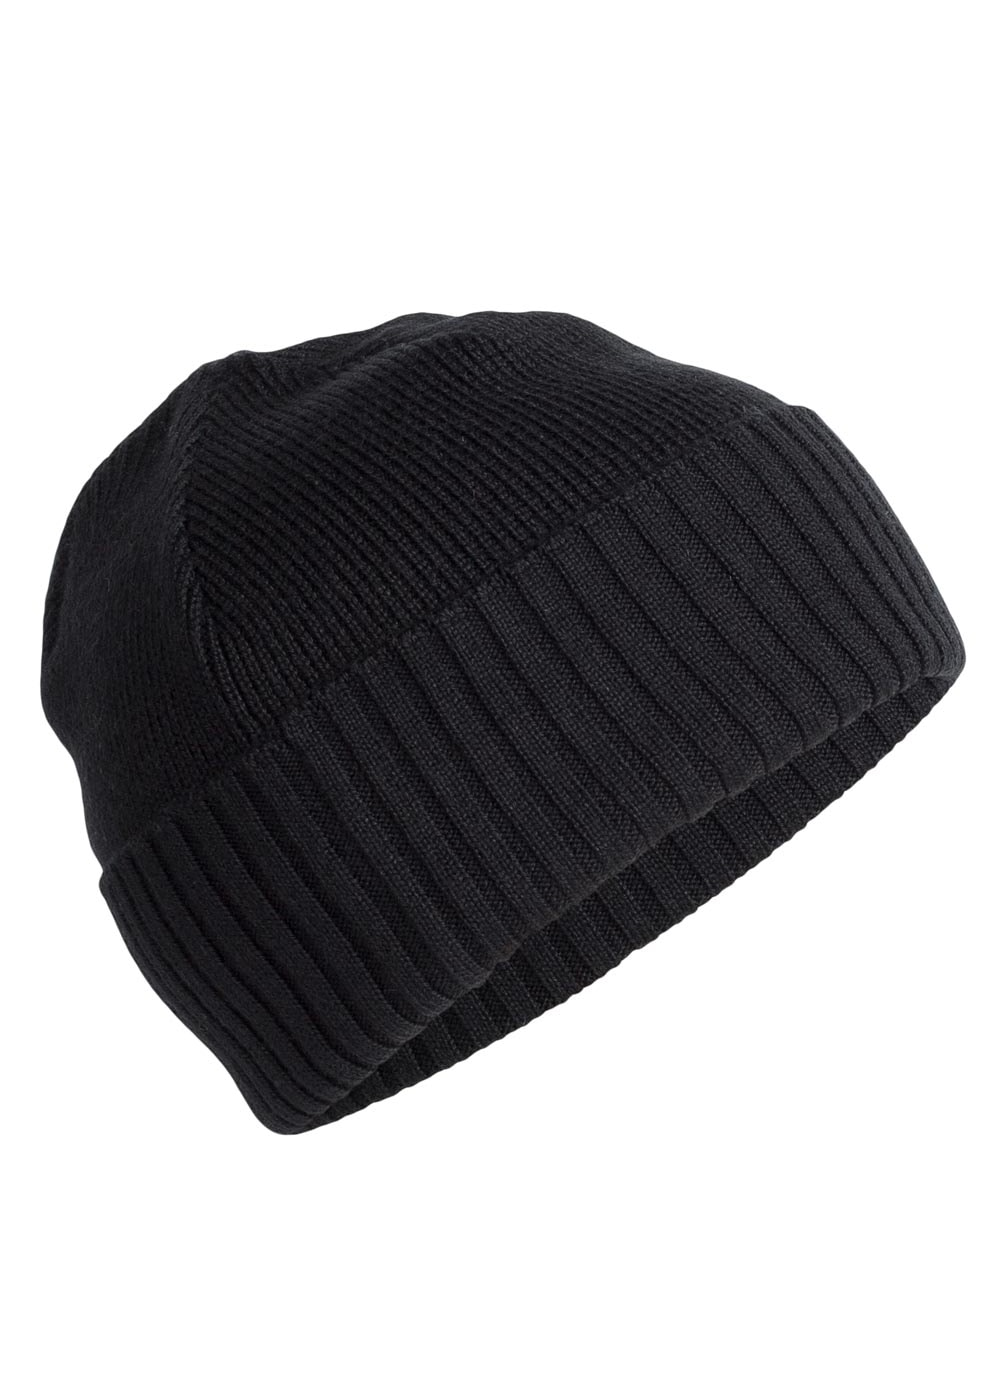 69bd6e77a36 Icebreaker Scout Beanie - Mens from A Hume UK